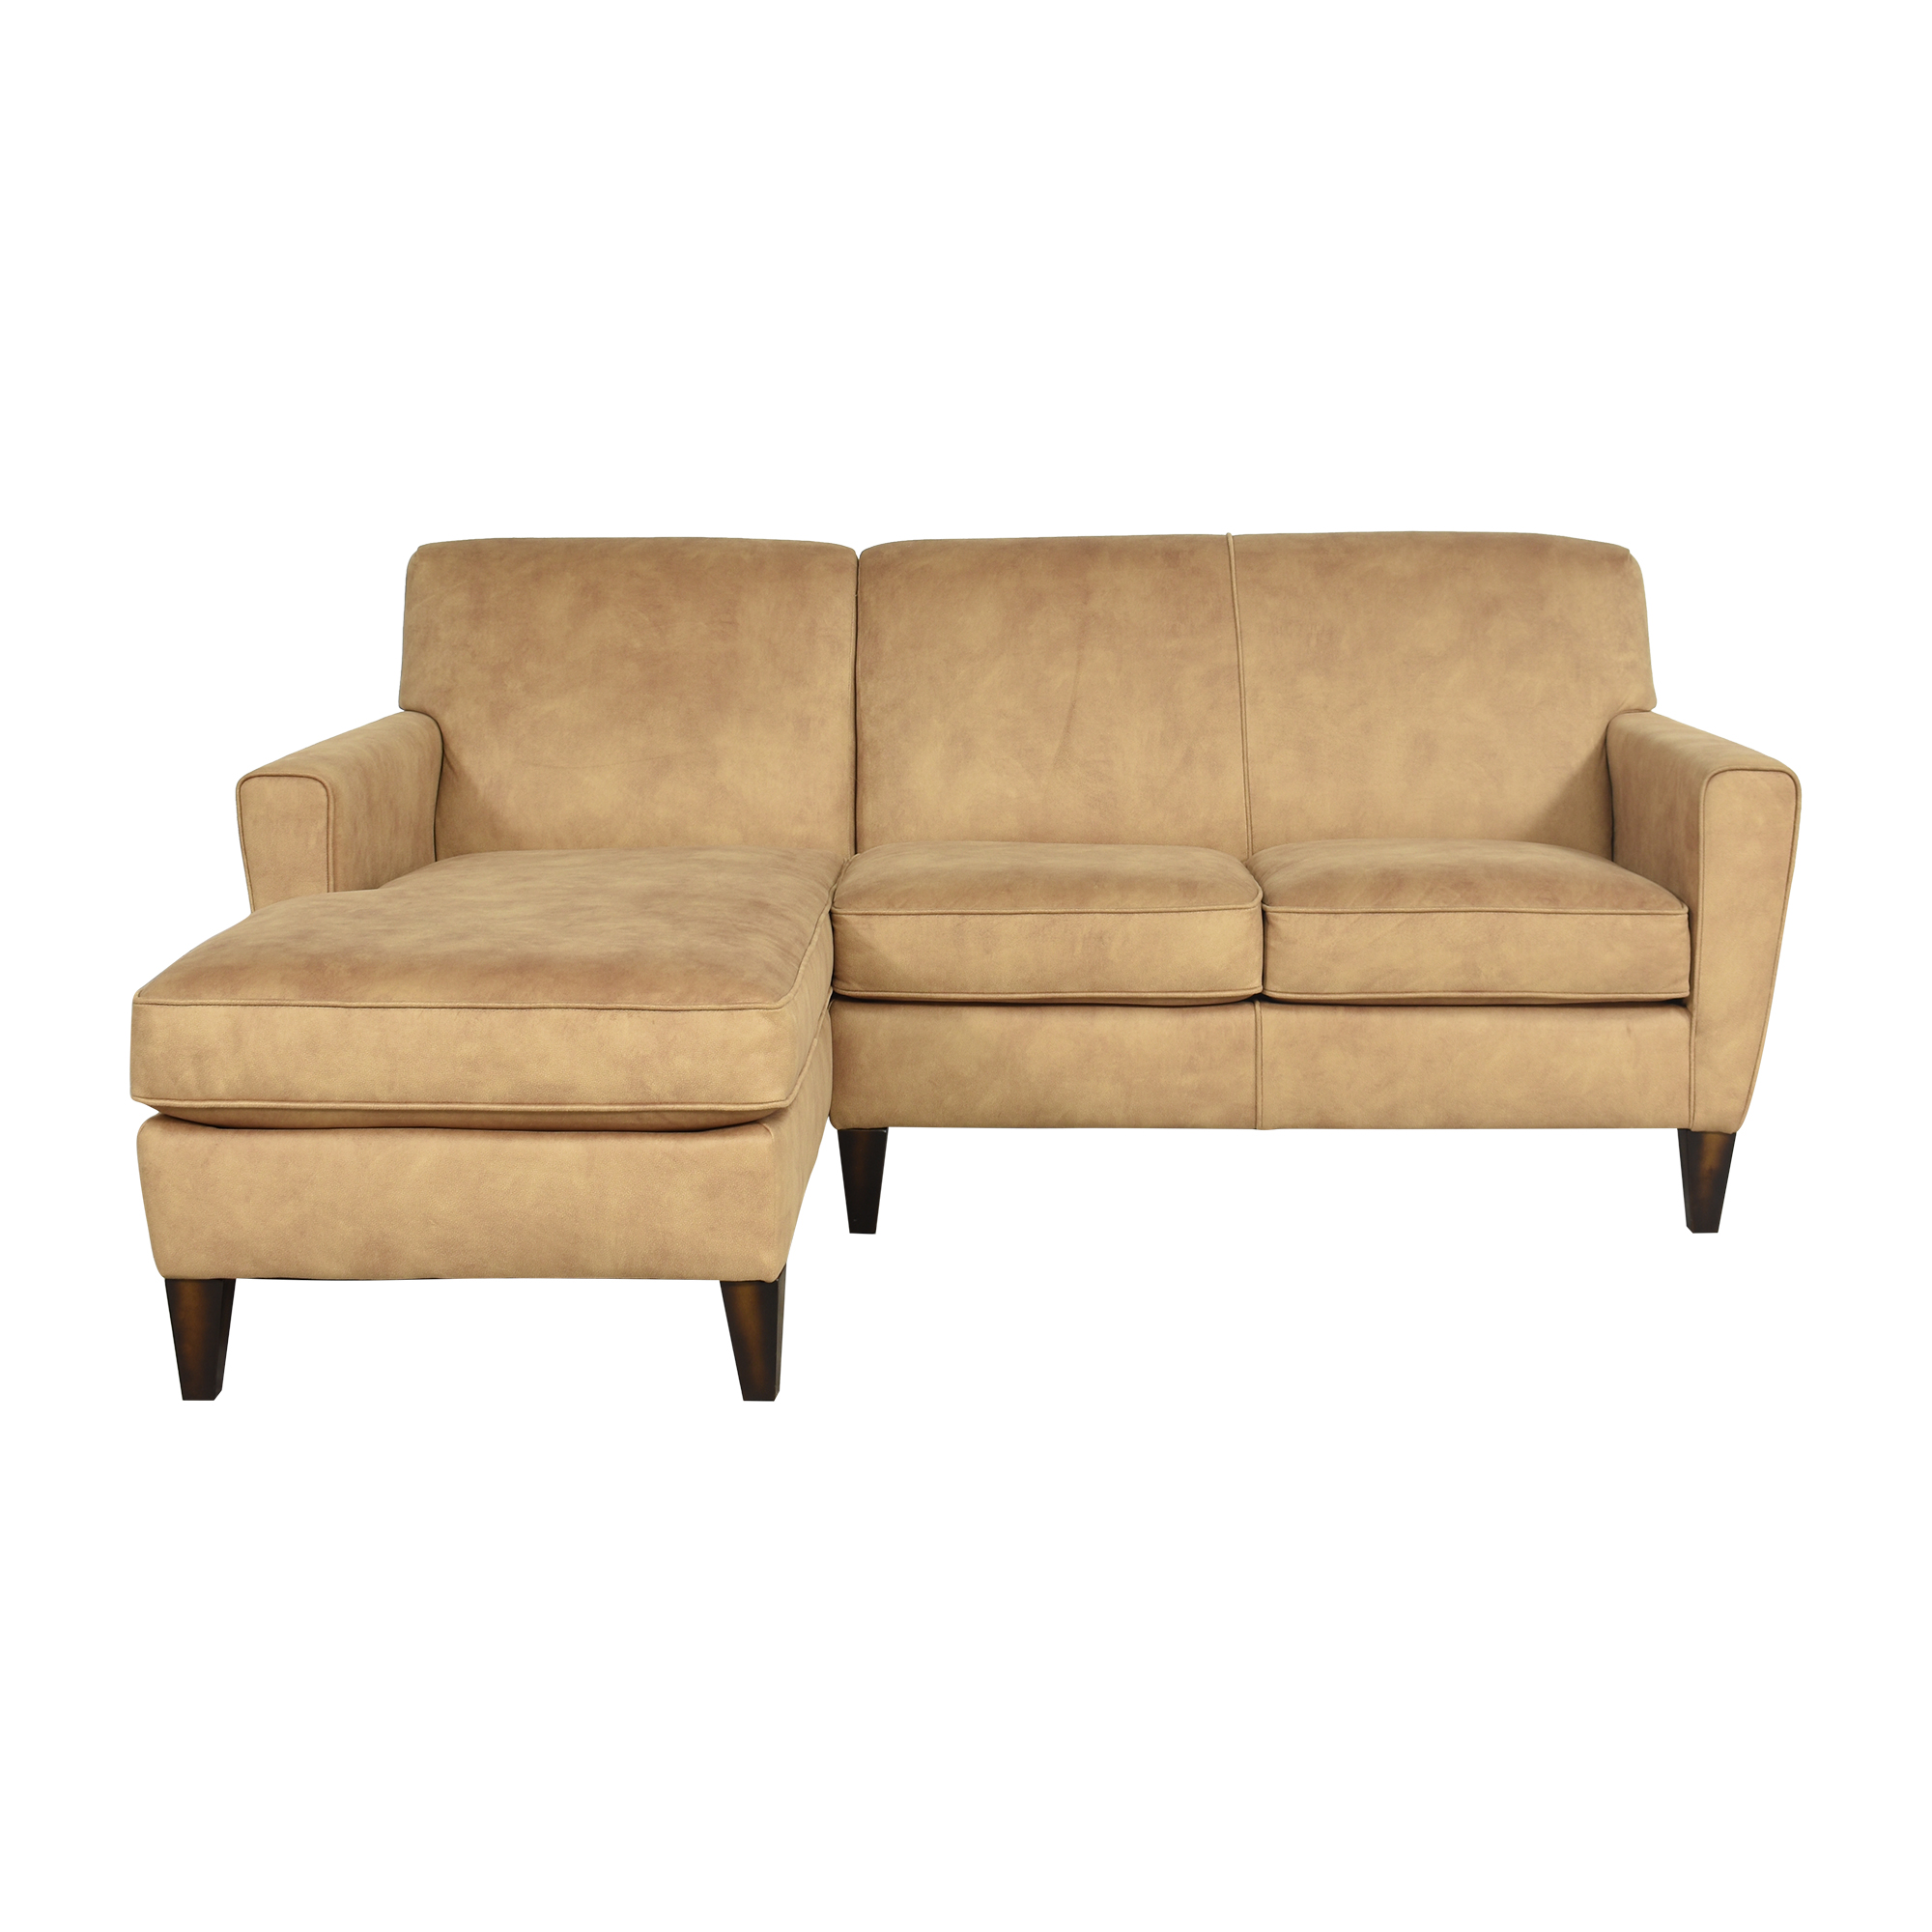 Flexsteel Flexsteel Digby Chaise Sectional coupon